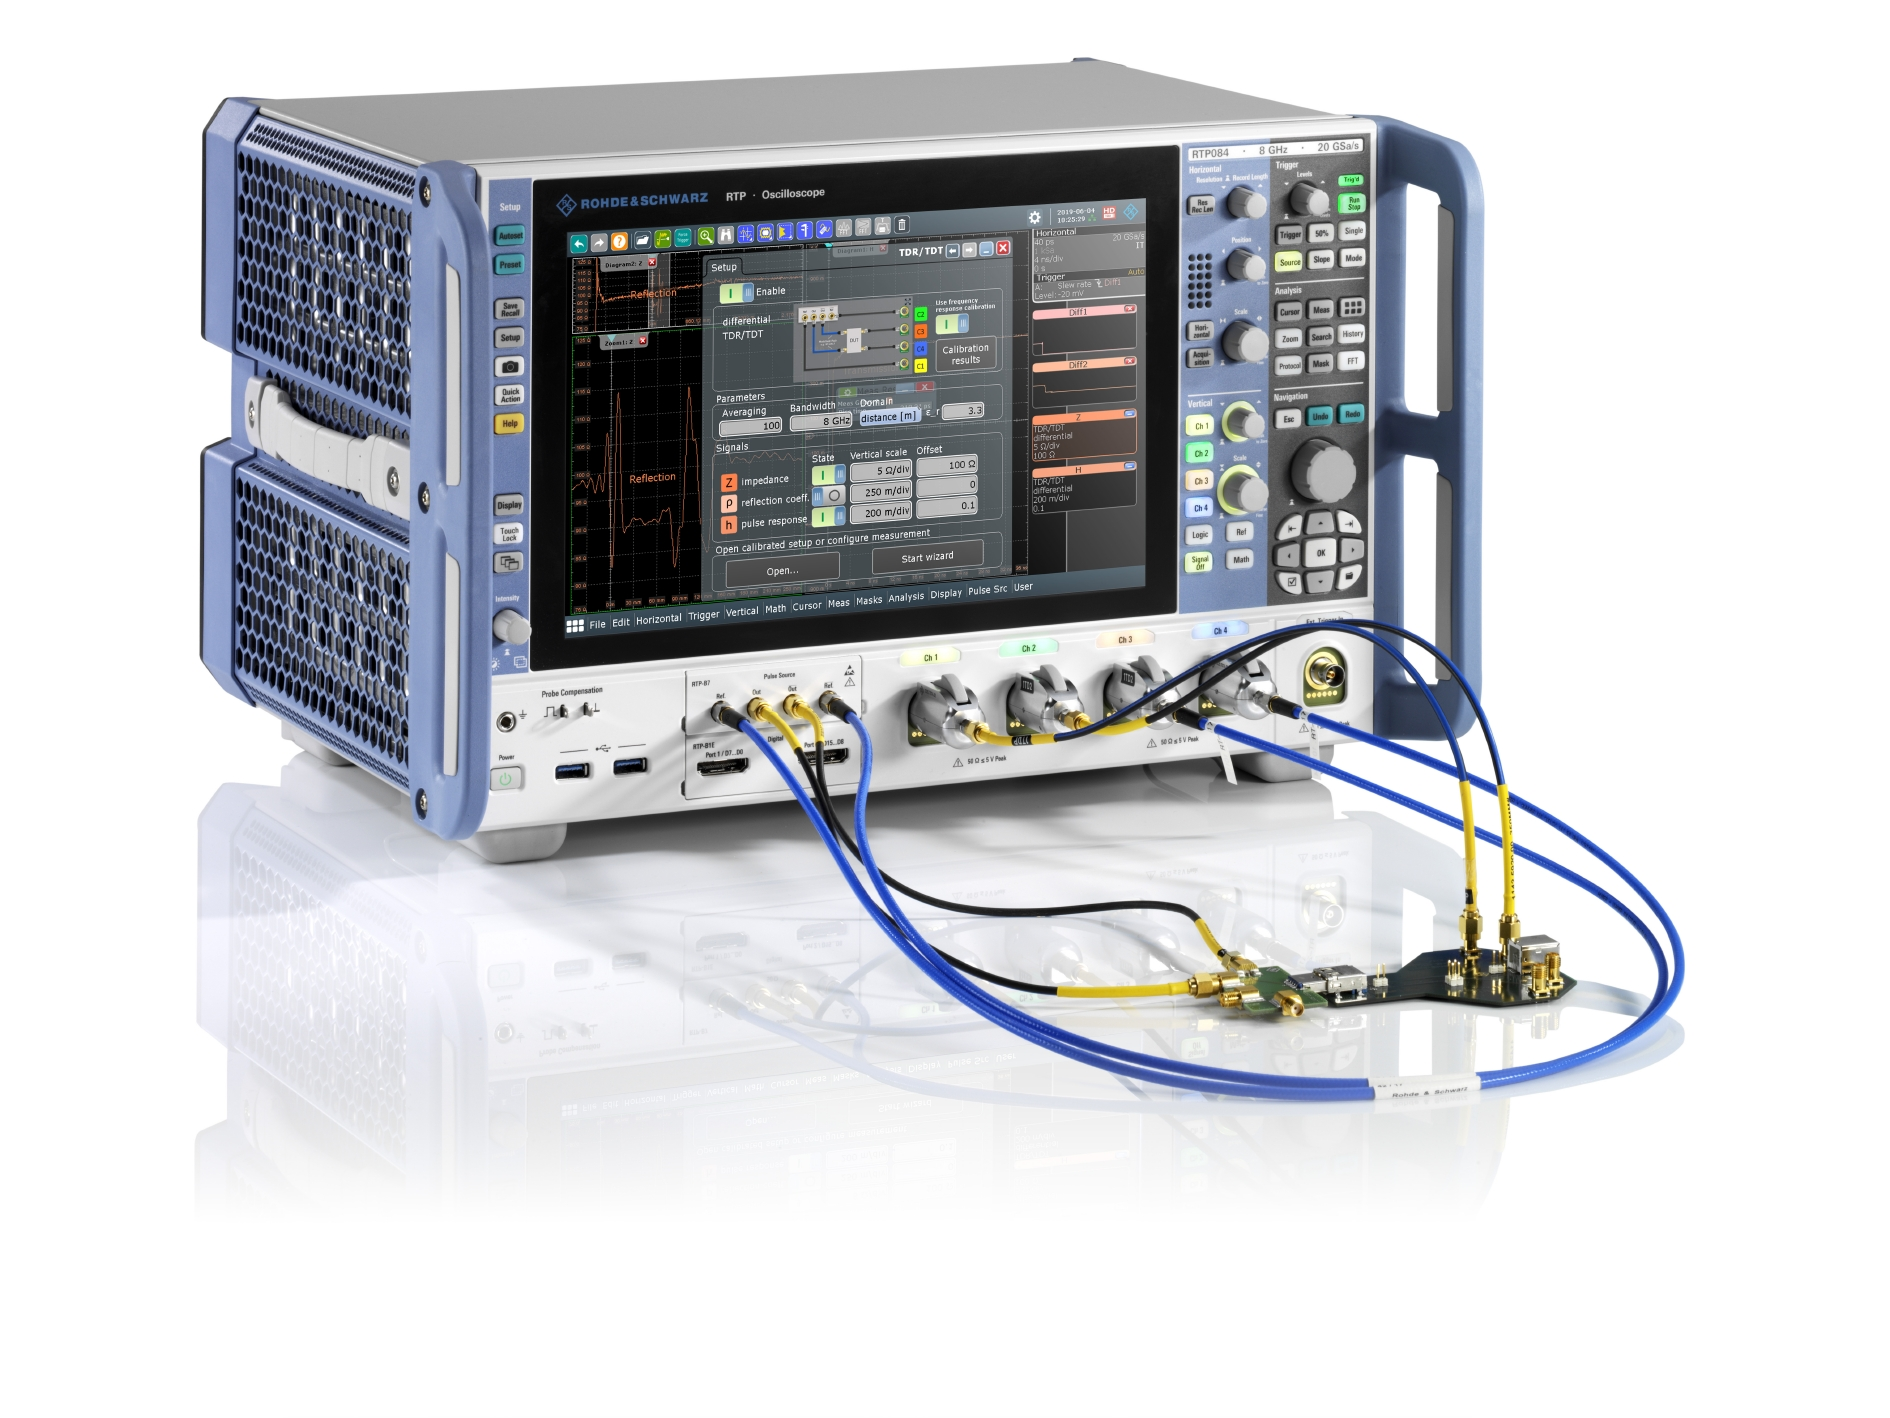 RTP High-Performance Ooscilloscope from Rohde & Schwarz Doubles Maximum Bandwidth to 16 GHz